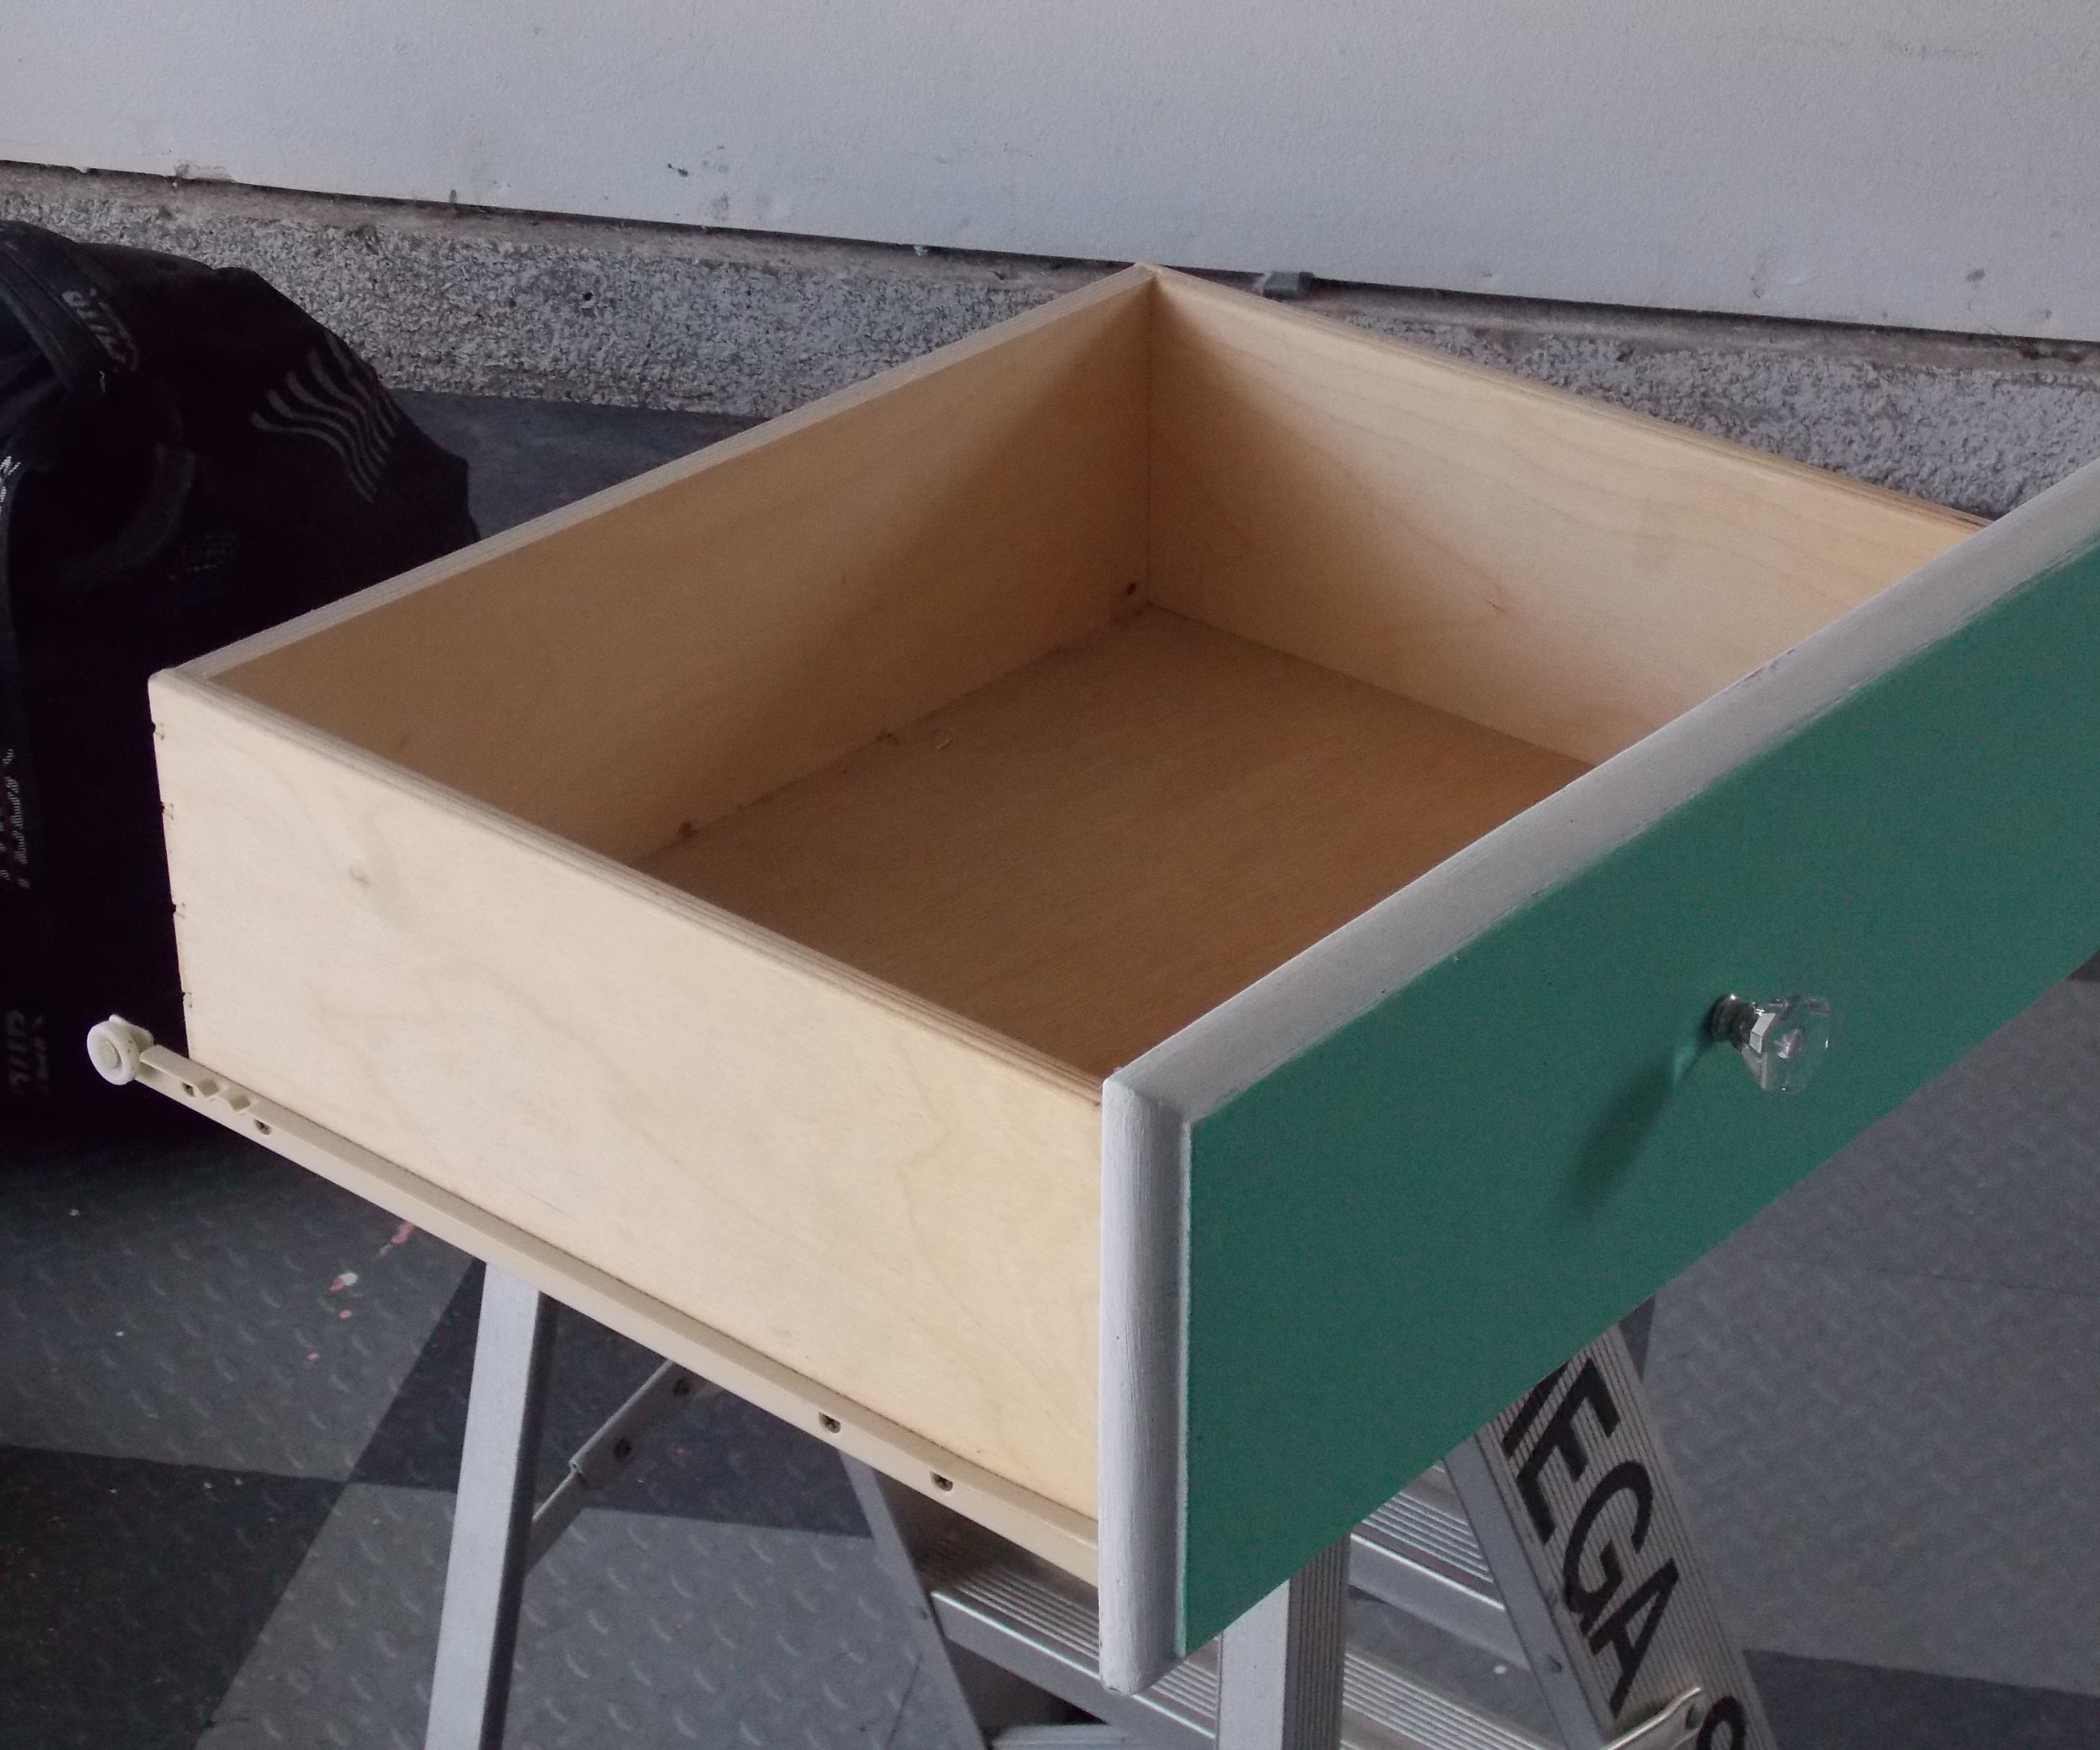 Turn Drawers Into Shelving (Easy)